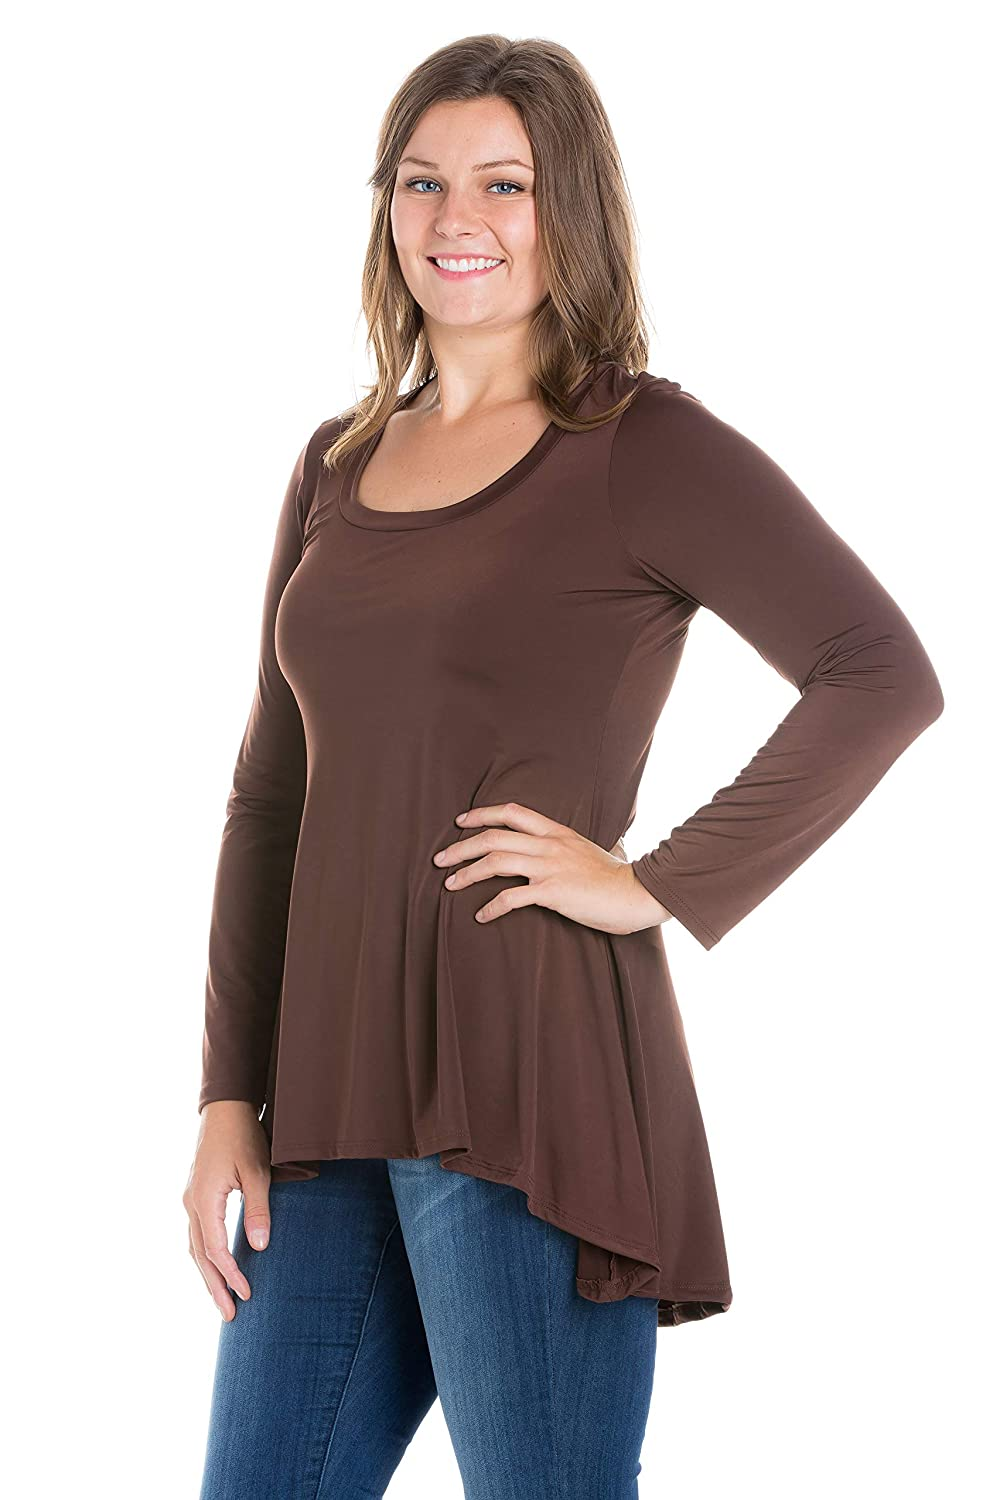 fc9731f7a7d4c5 24seven Comfort Apparel Plus Size Clothing for Women Long Sleeve High Low Tunic  Top - Made in USA - (Sizes 1XL-3XL) at Amazon Women s Clothing store